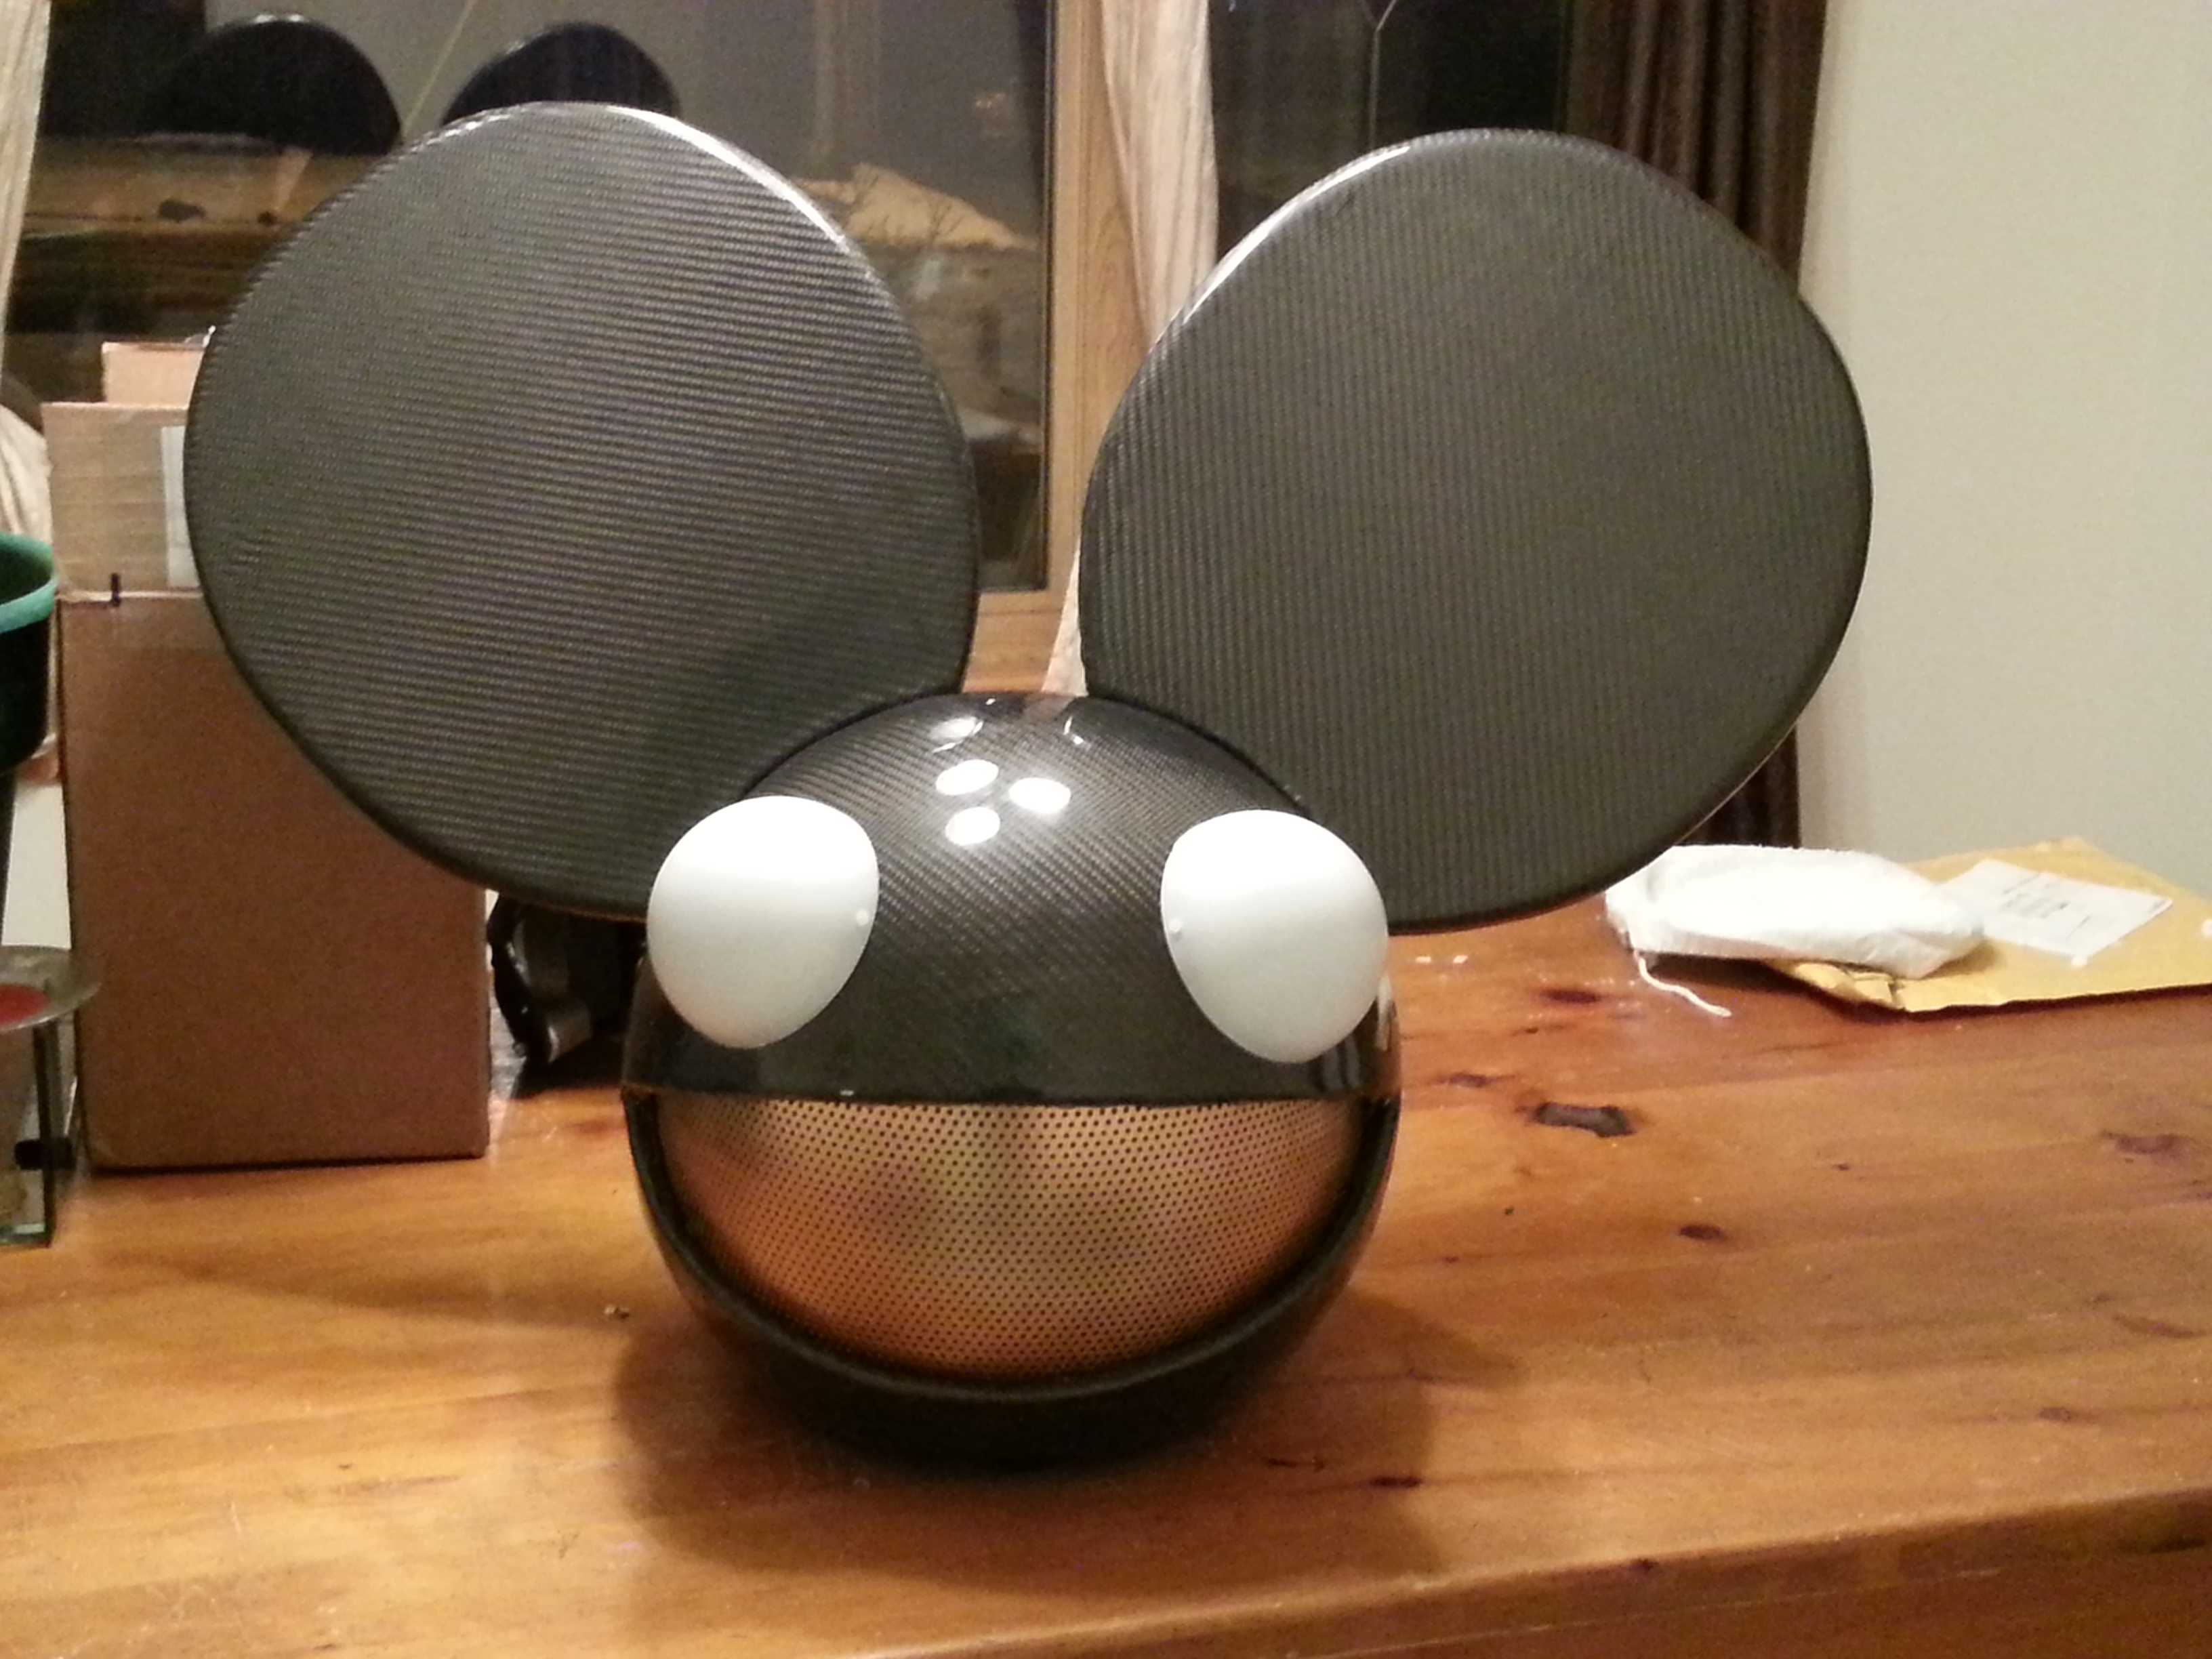 Carbon Fiber Deadmau5 Head - As close as it gets to the real deal